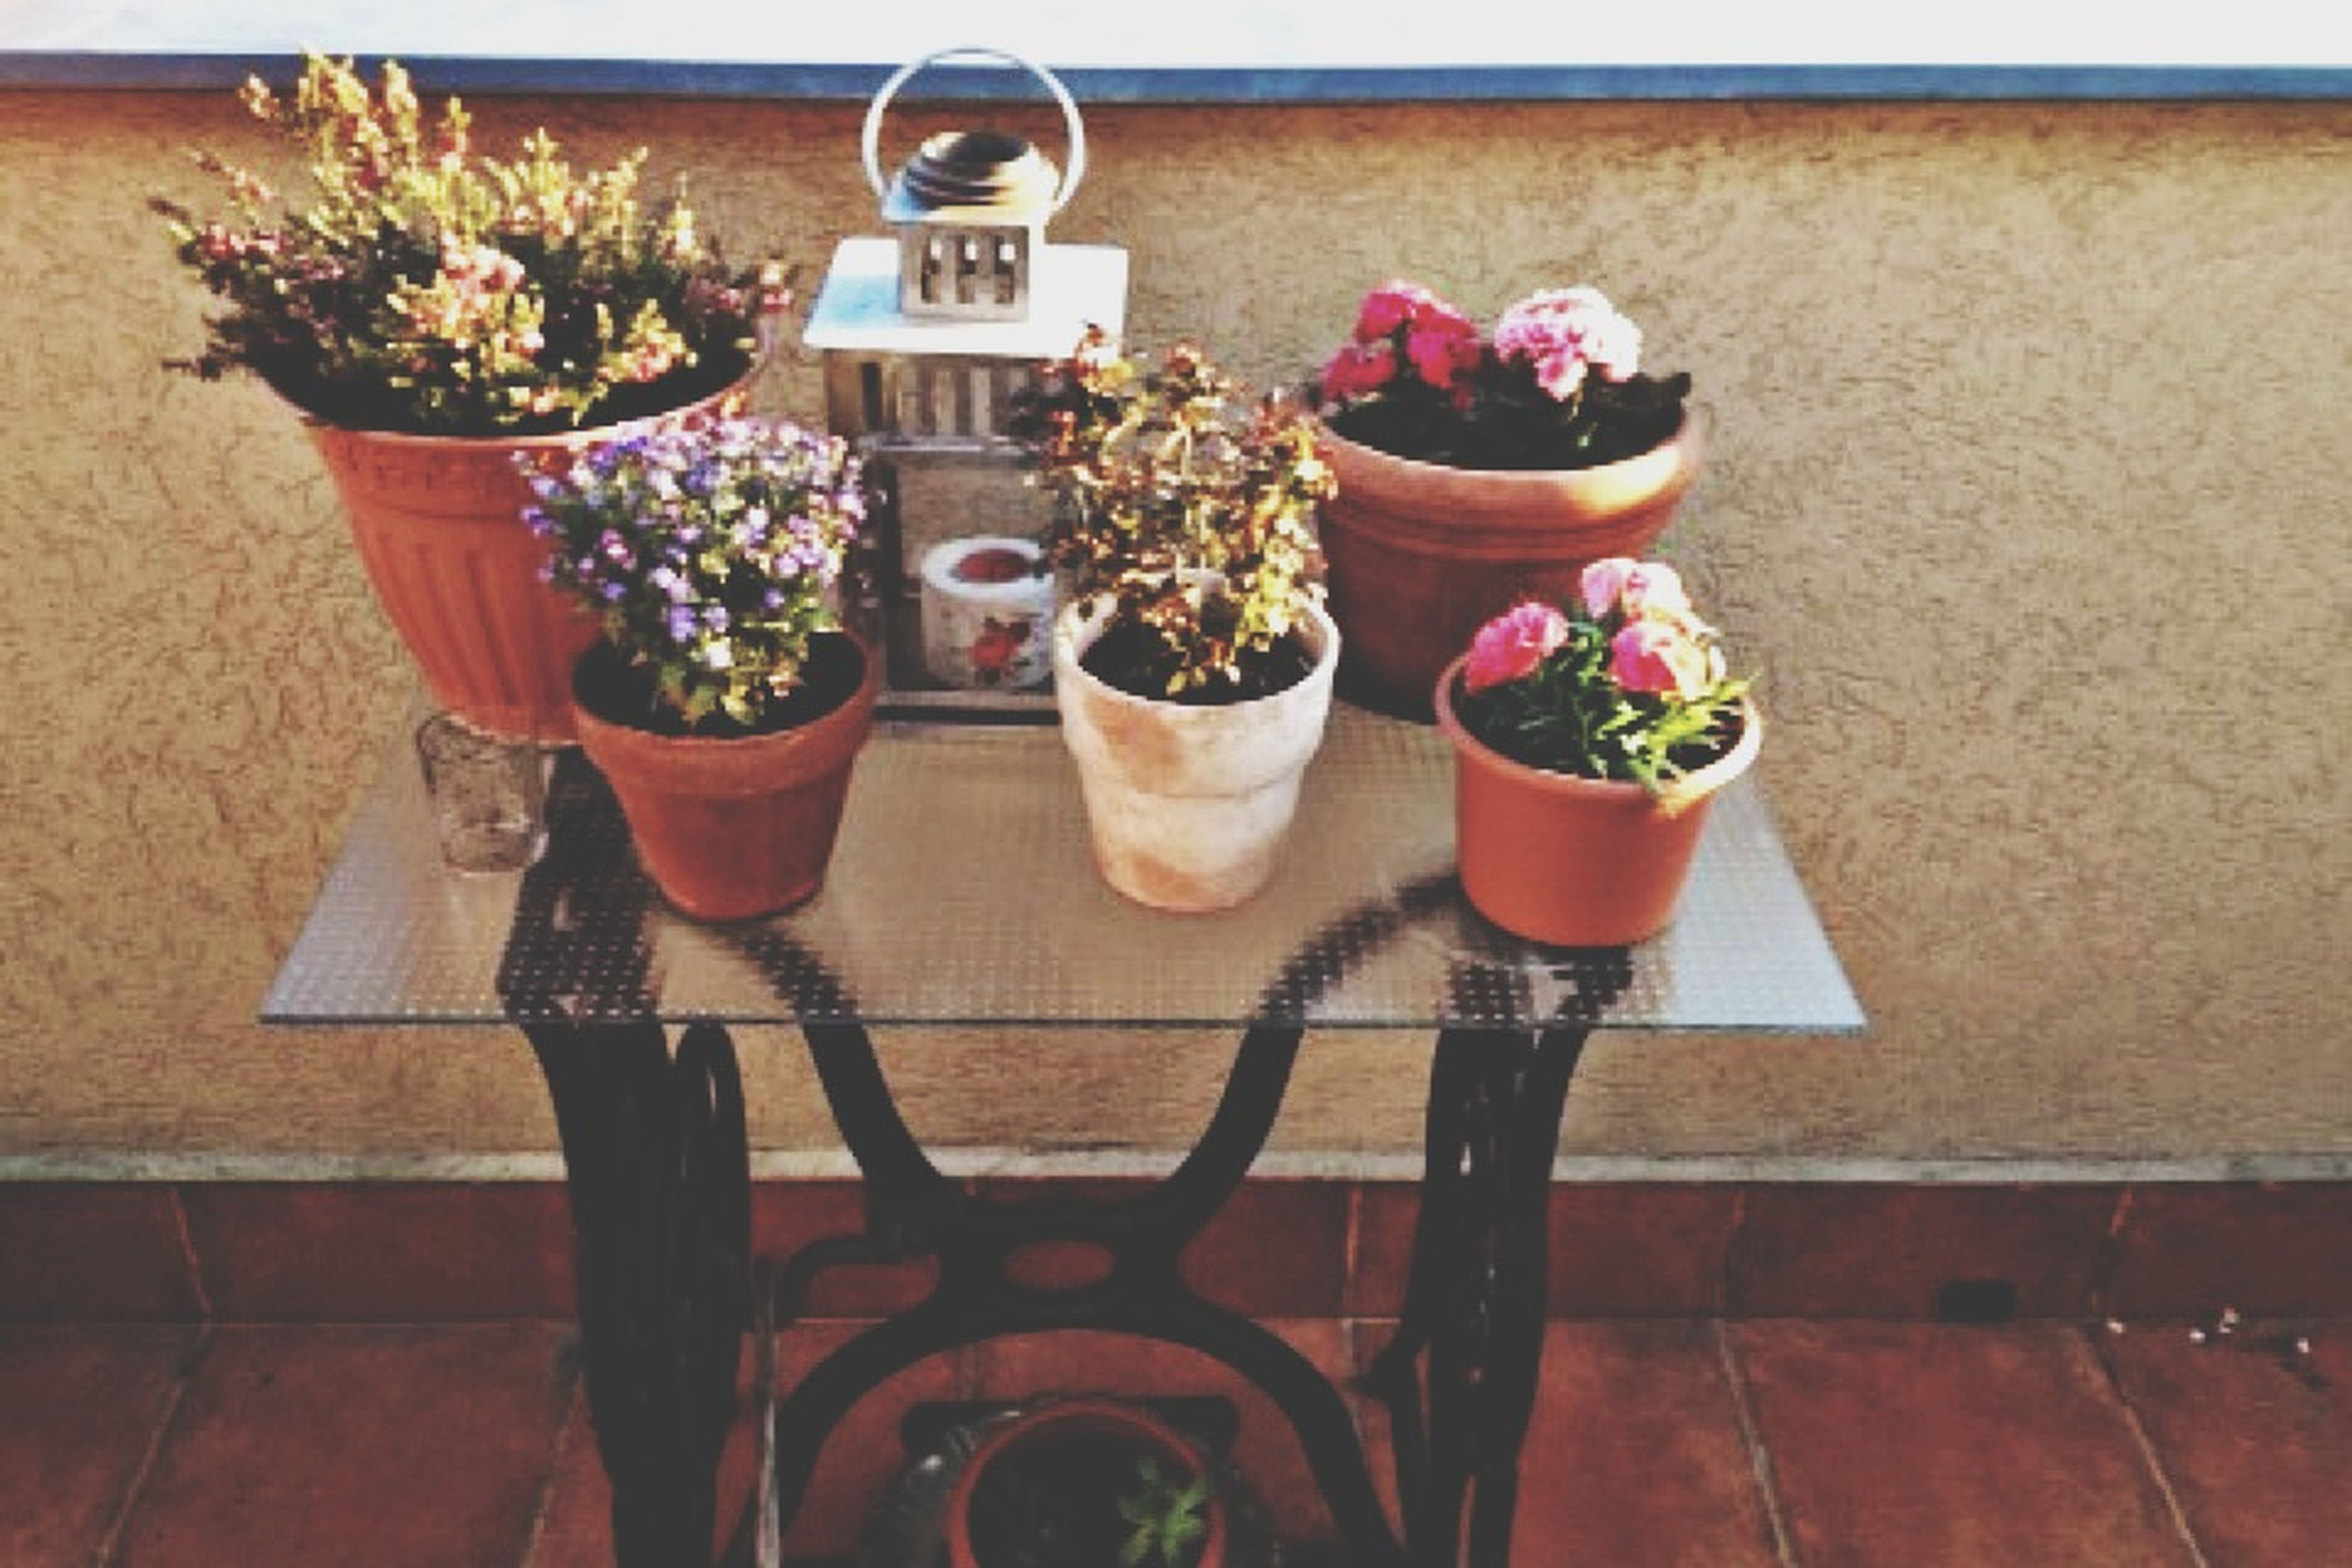 flower, potted plant, freshness, plant, flower pot, variation, table, vase, decoration, growth, high angle view, day, wall - building feature, no people, pink color, sunlight, outdoors, nature, still life, shadow